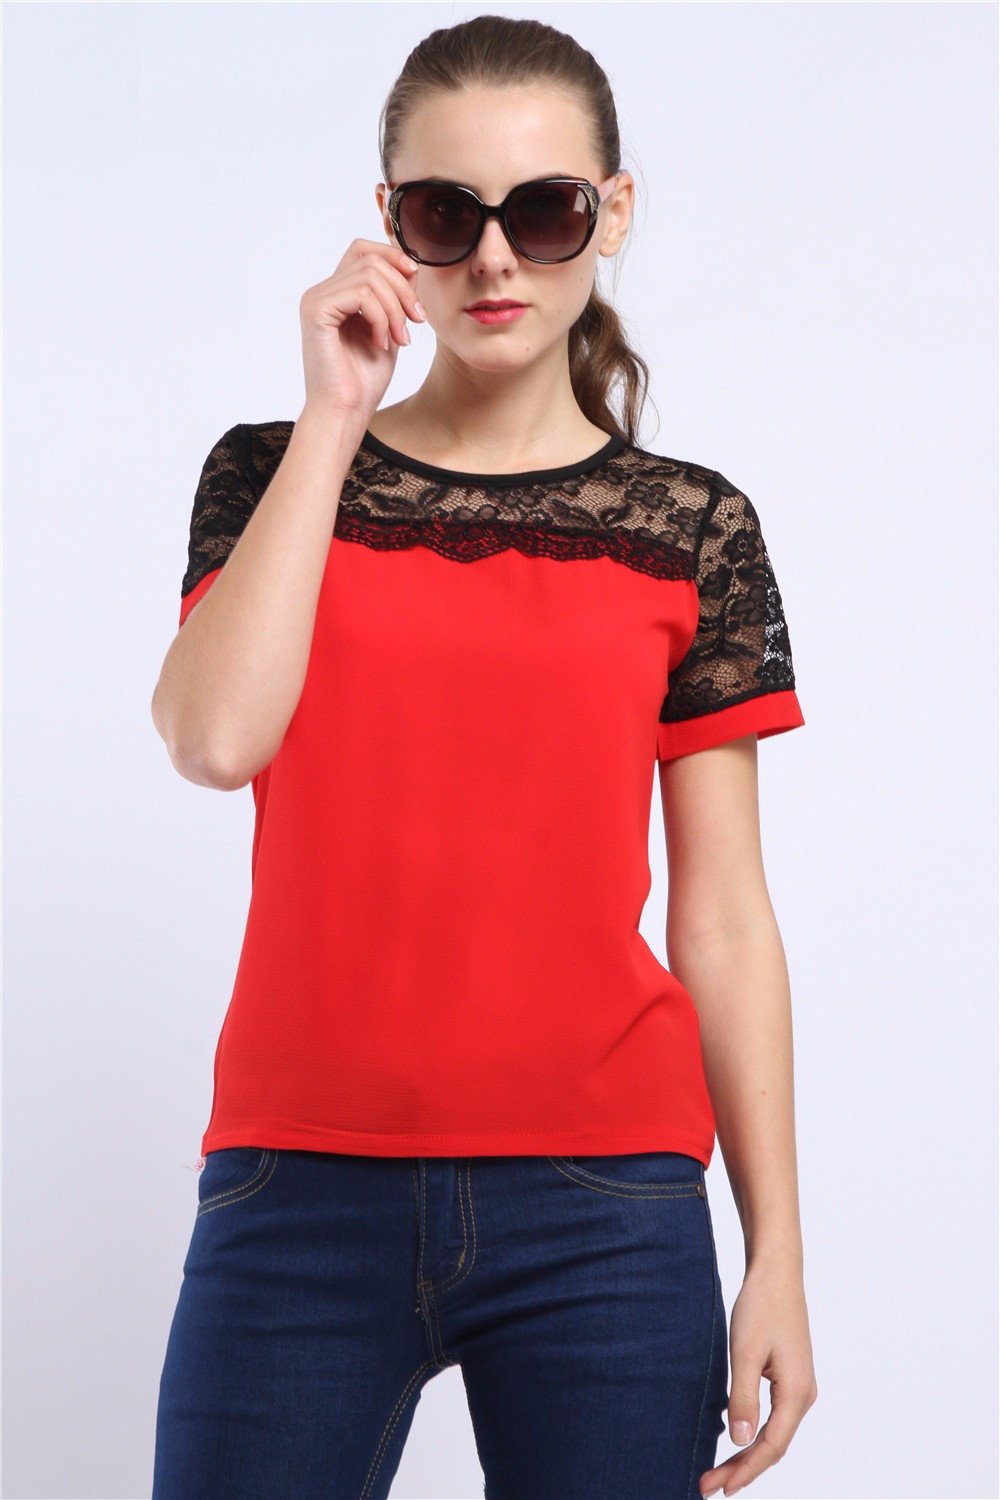 Women Blouses Summer Lace Chiffon Blouse Casual Blusa Feminina Tops Fashion Chemise Femme Shirts Plus Size 5XL Red White Pink 33